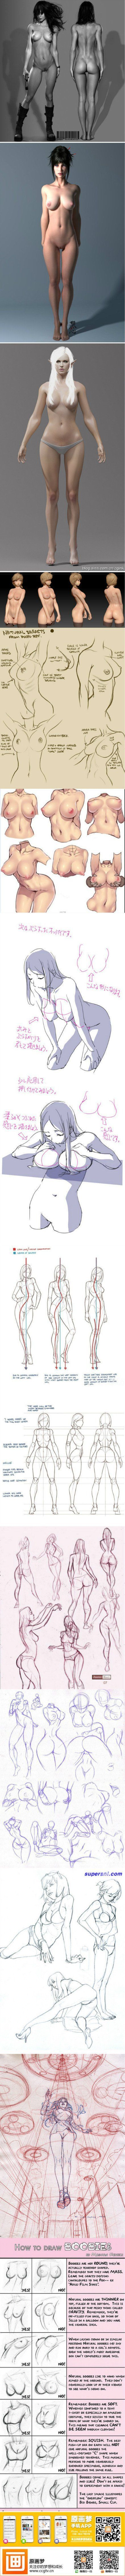 How to Draw the Female Face | Body anatomy. How to draw female body.: